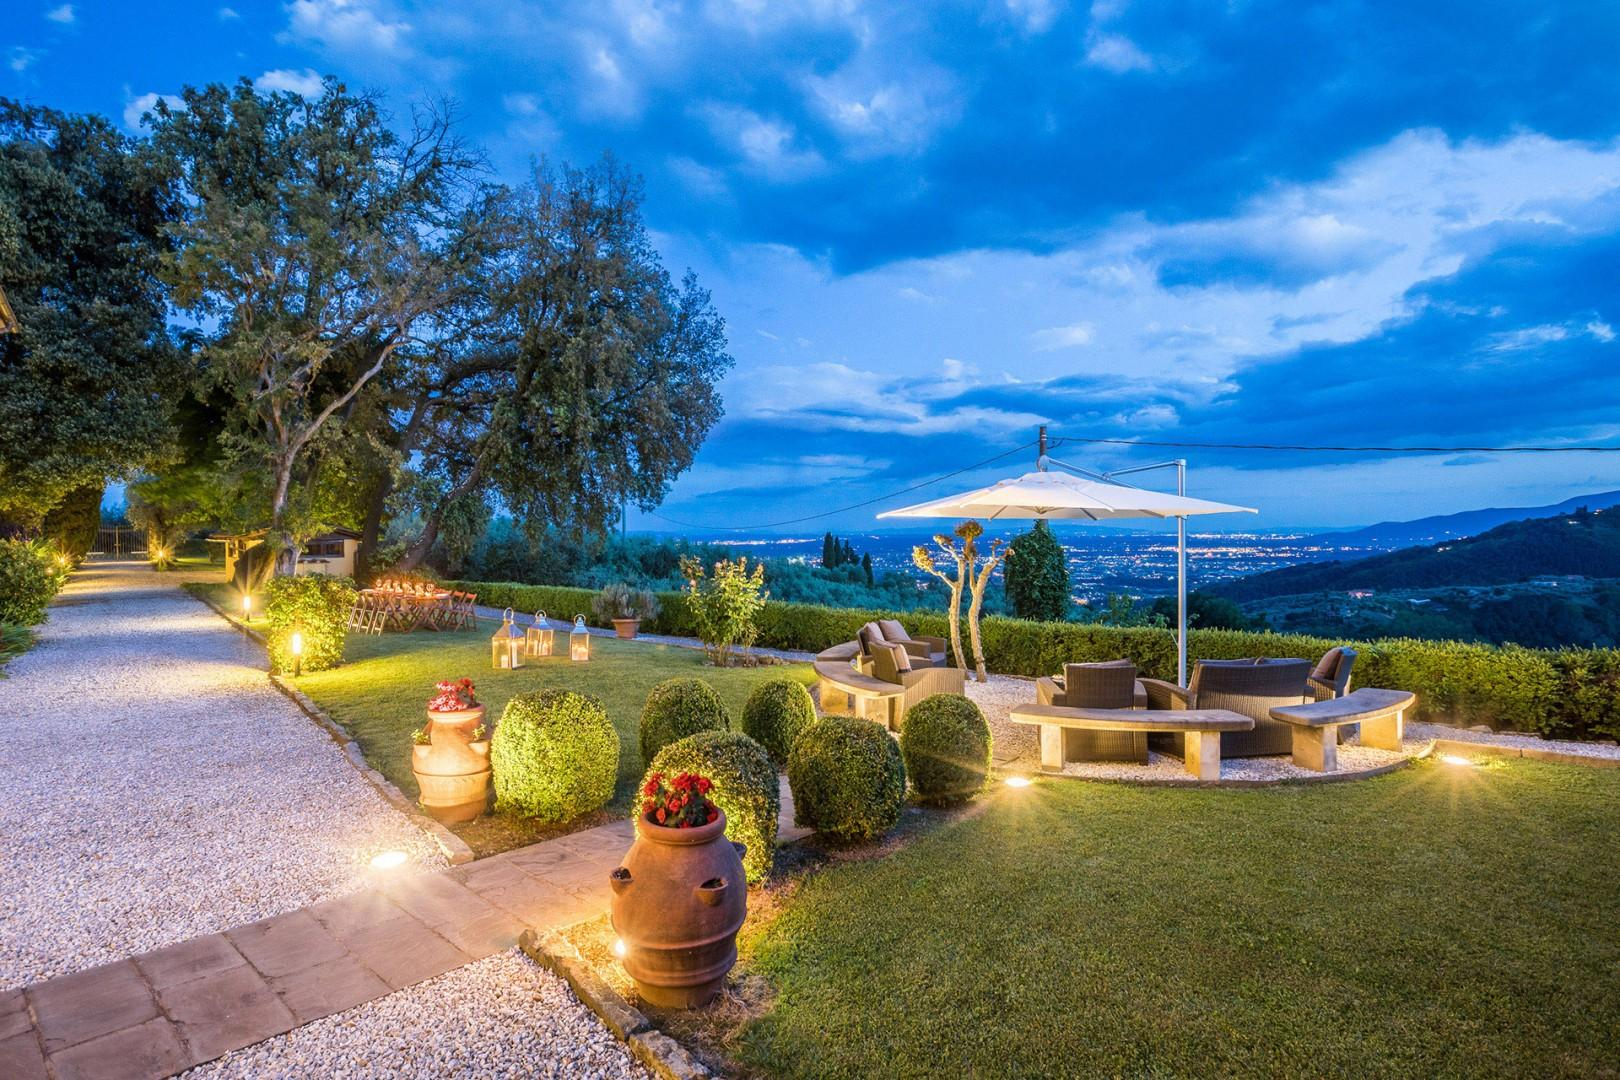 The panoramas from the villa are of the Valdinievole, the valley of the Nievole river.